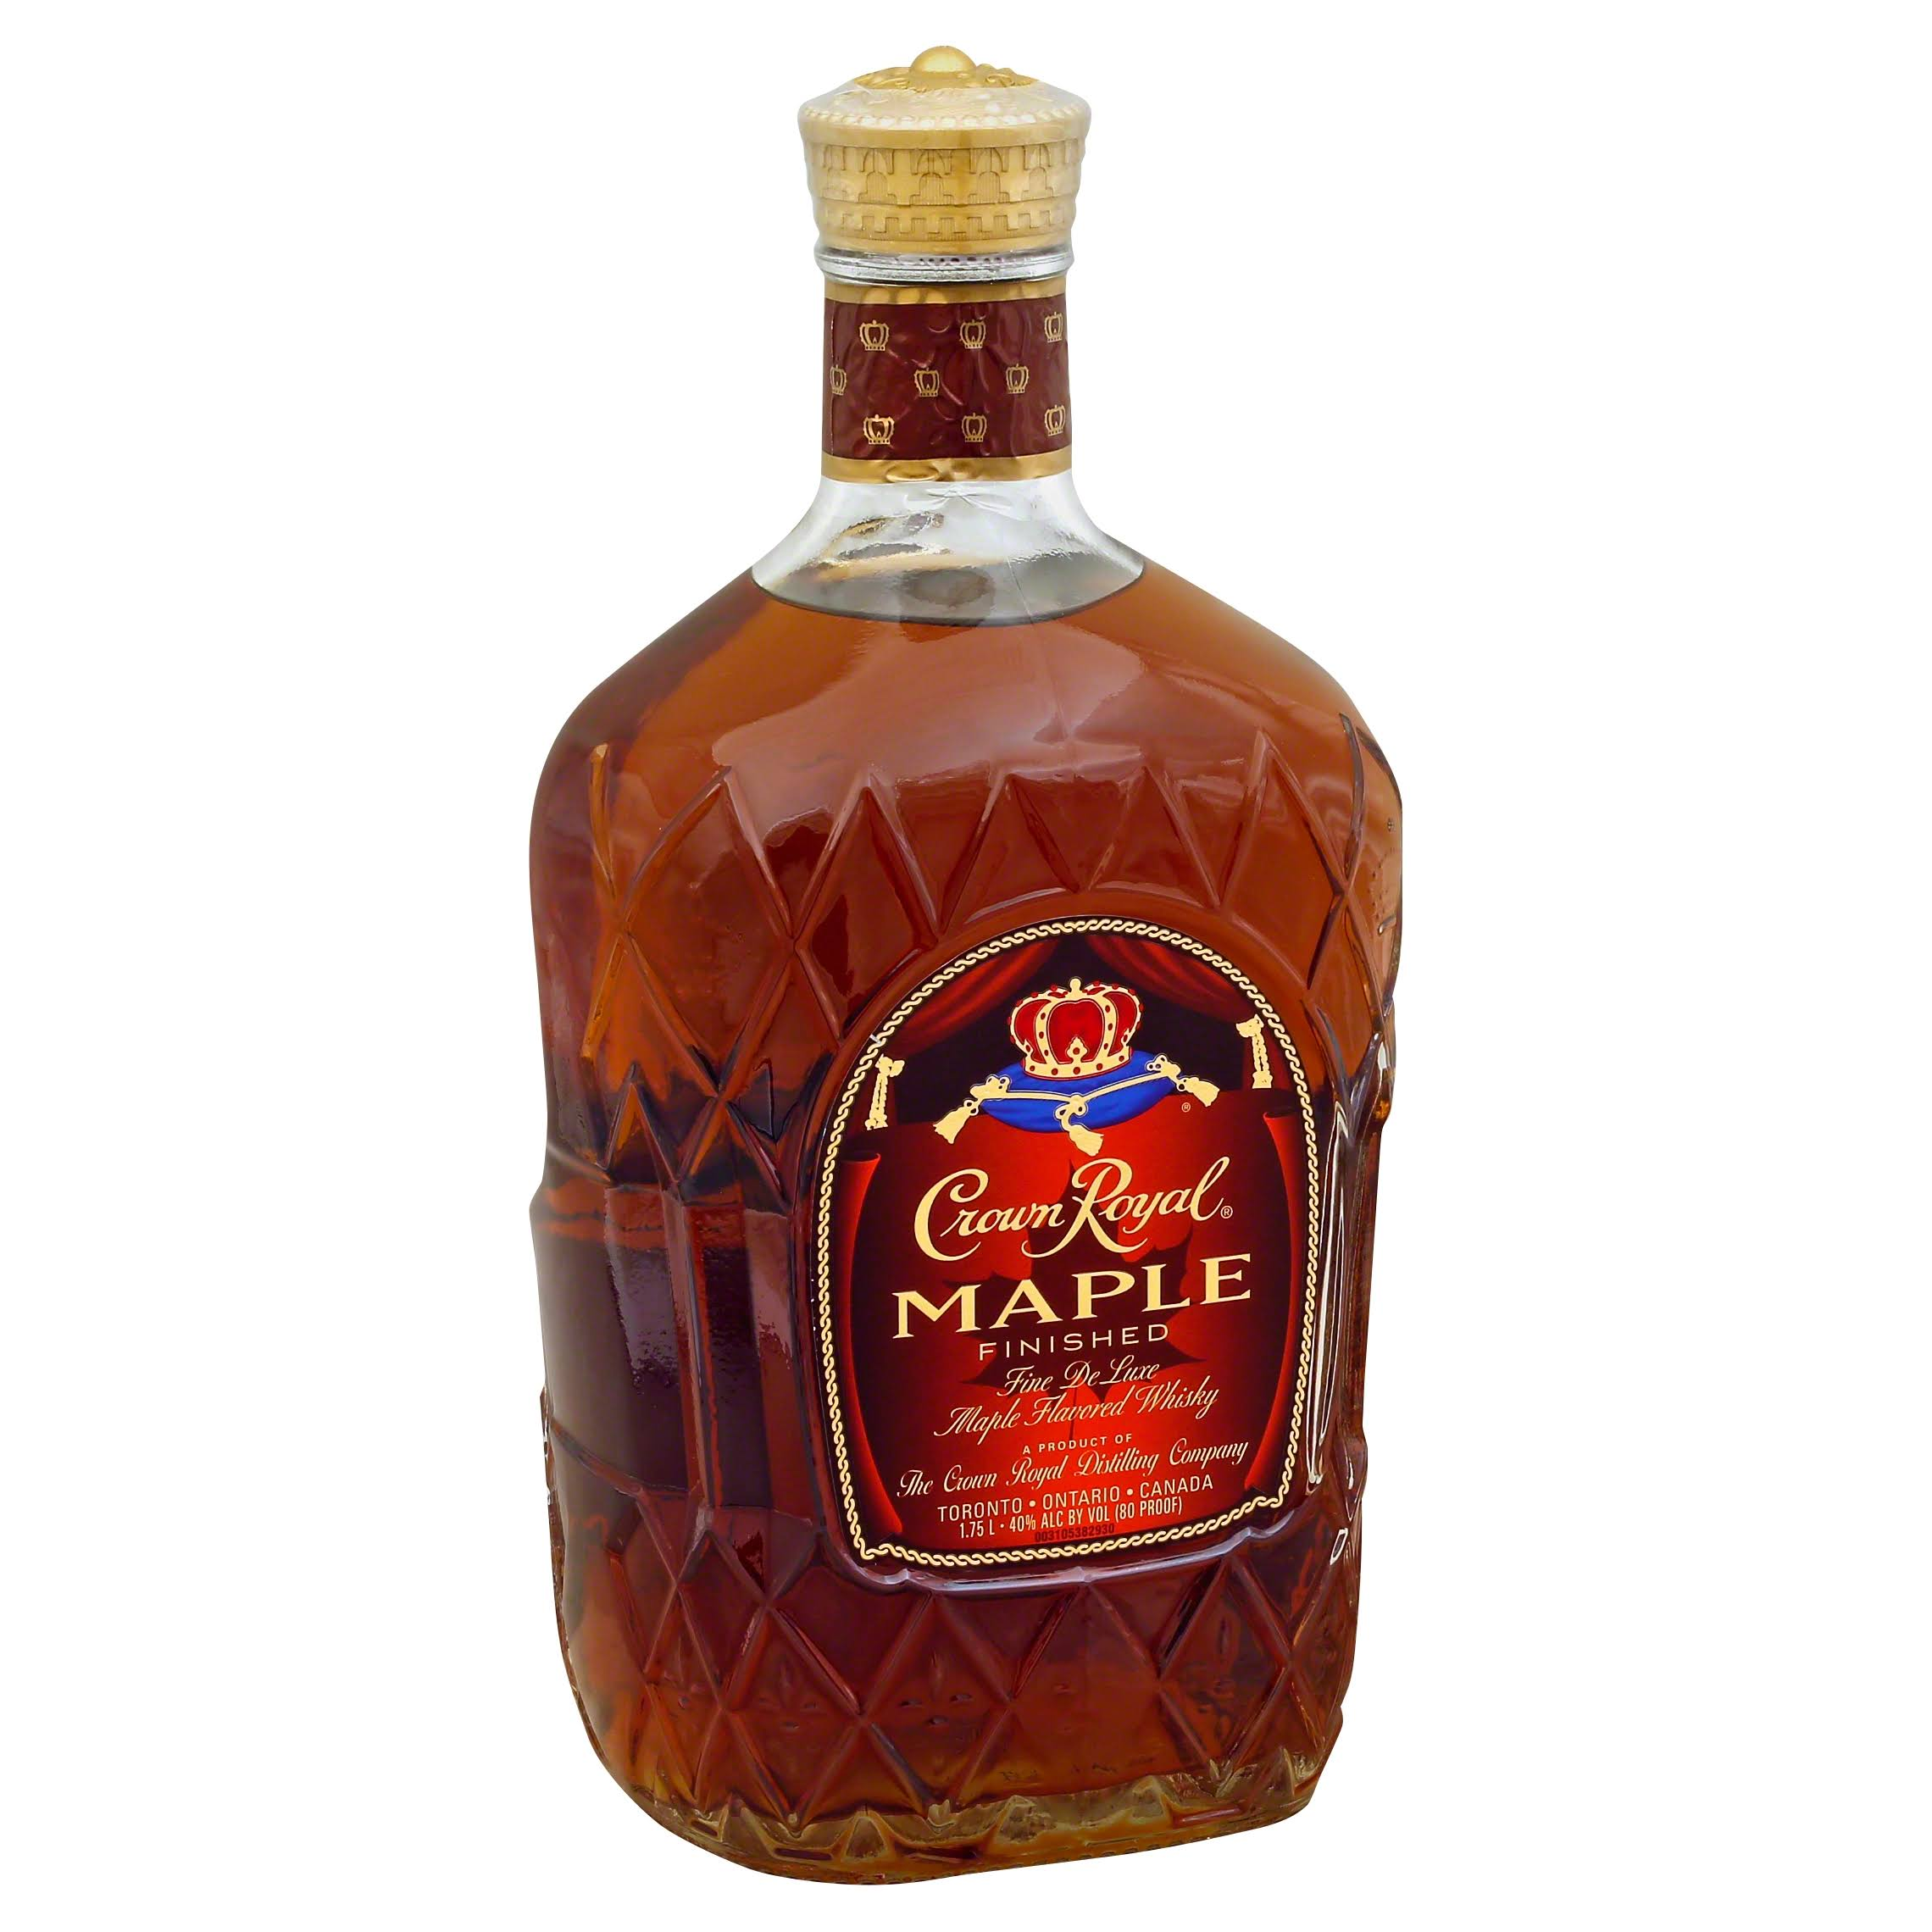 Crown Royal Canadian Maple Whisky - 1.75 L bottle